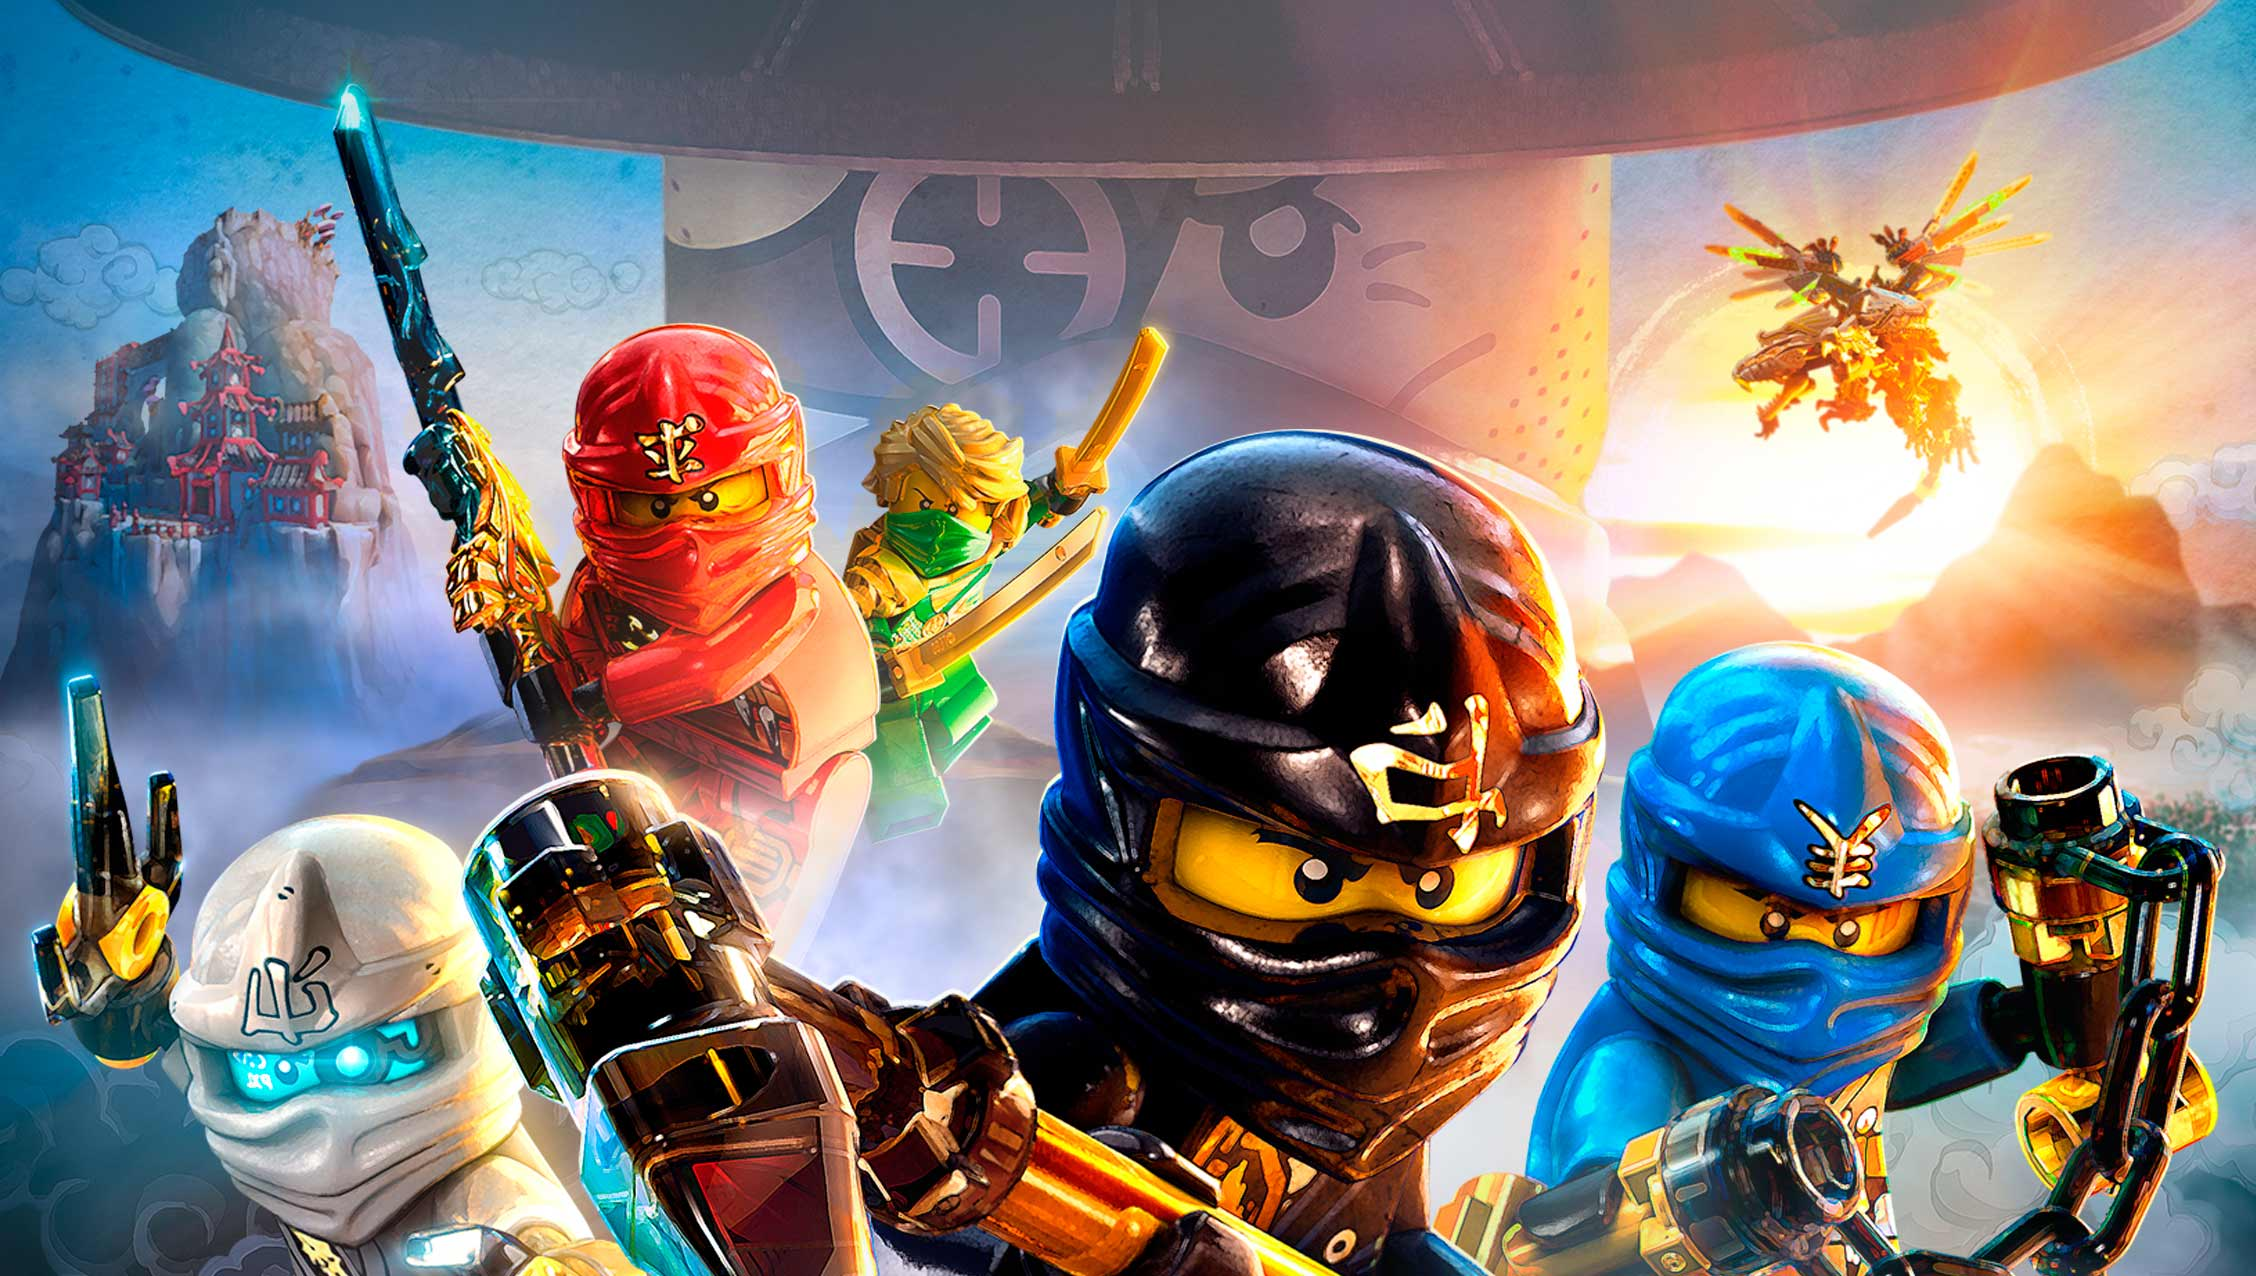 <strong>LEGOLAND NINJAGO PRESS EVENT<br>Casting, Production</strong>